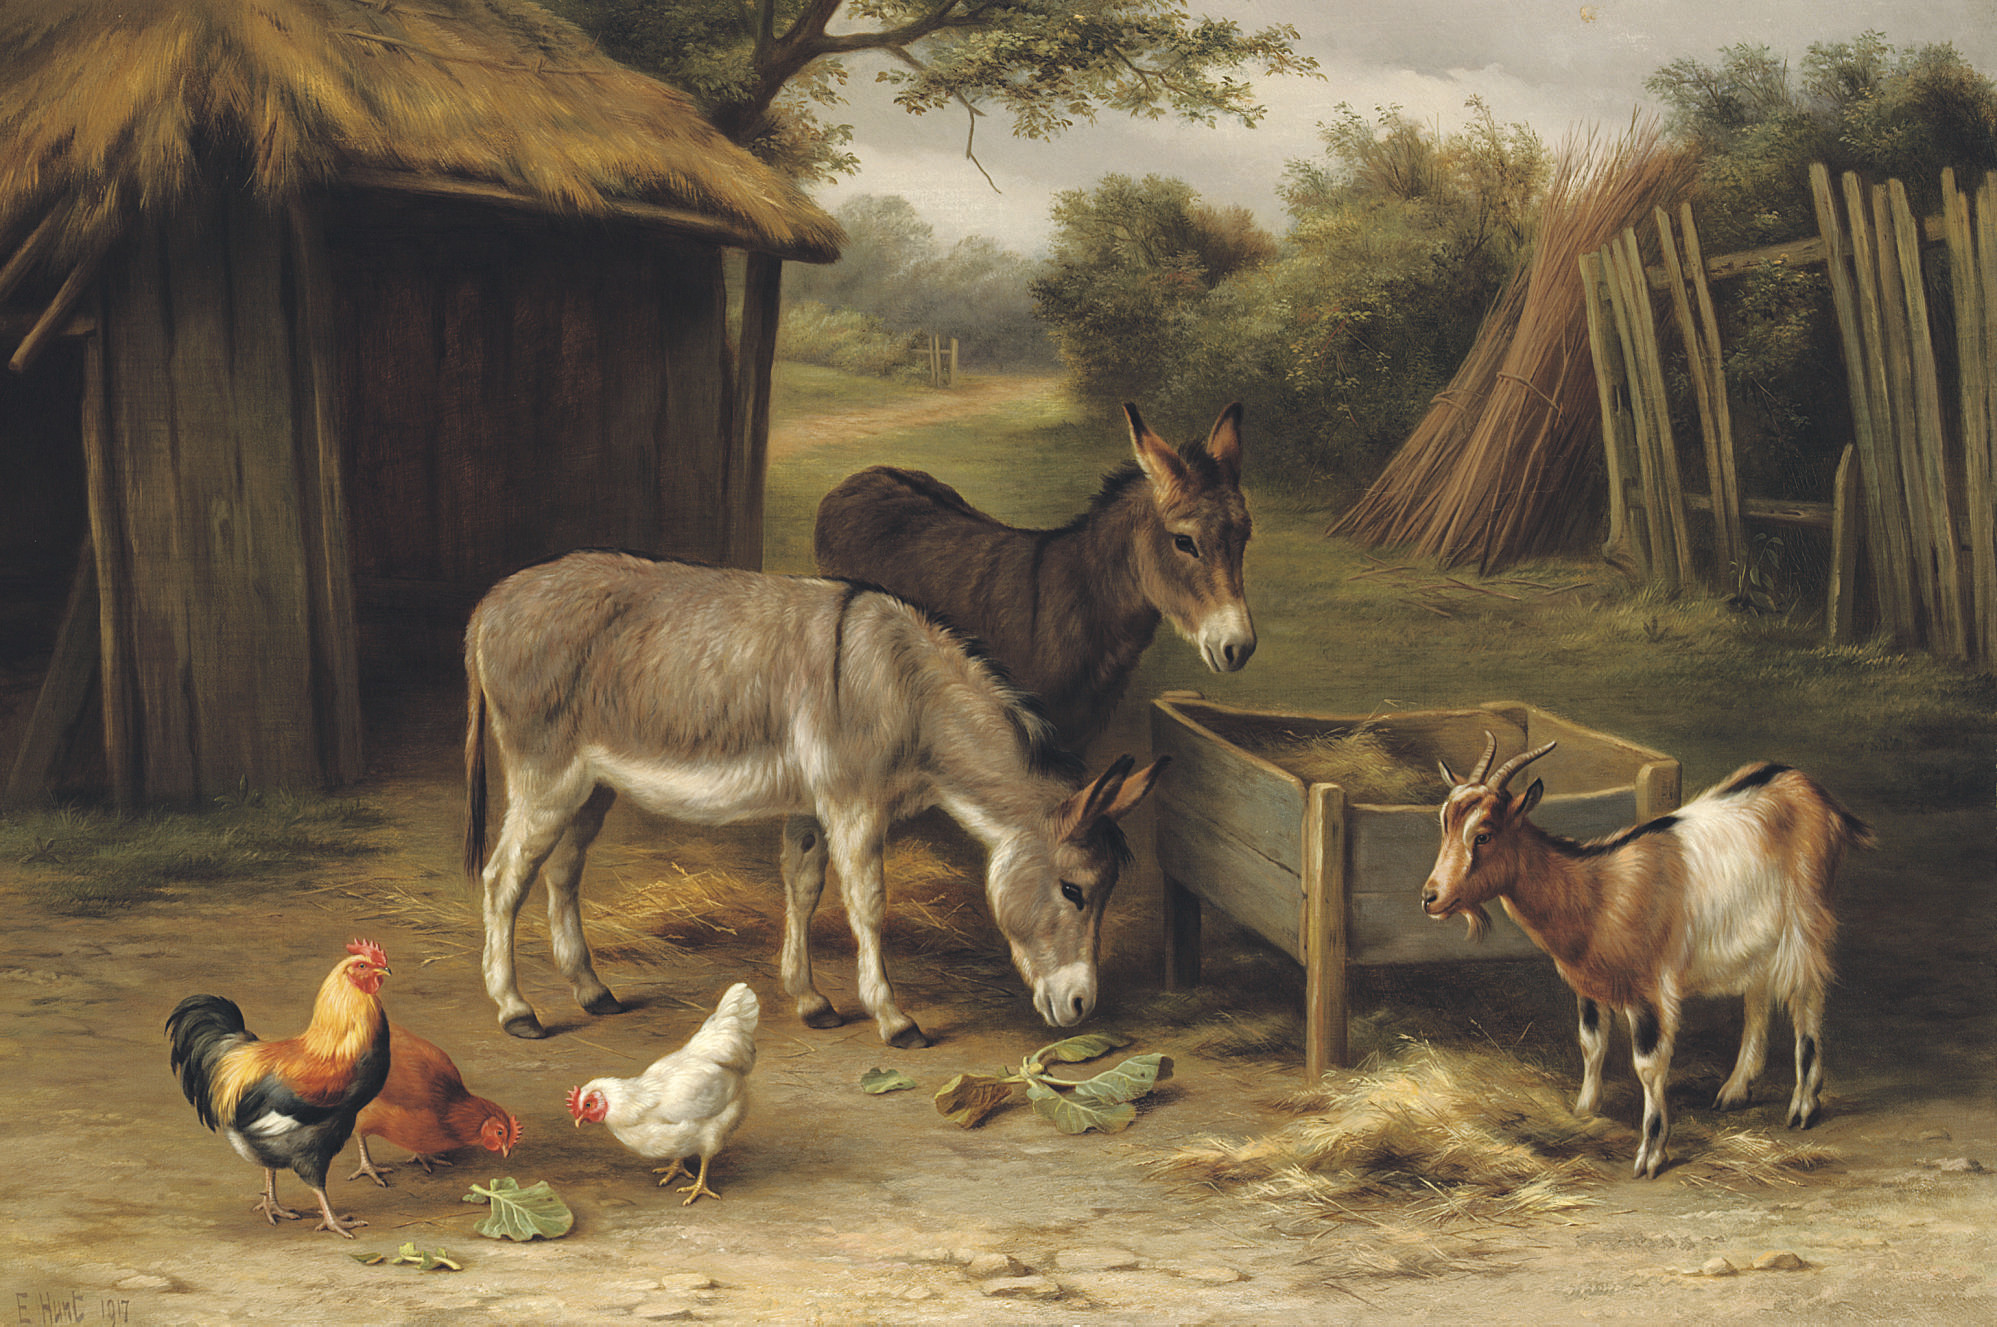 A farmyard with donkeys, a goat and chickens